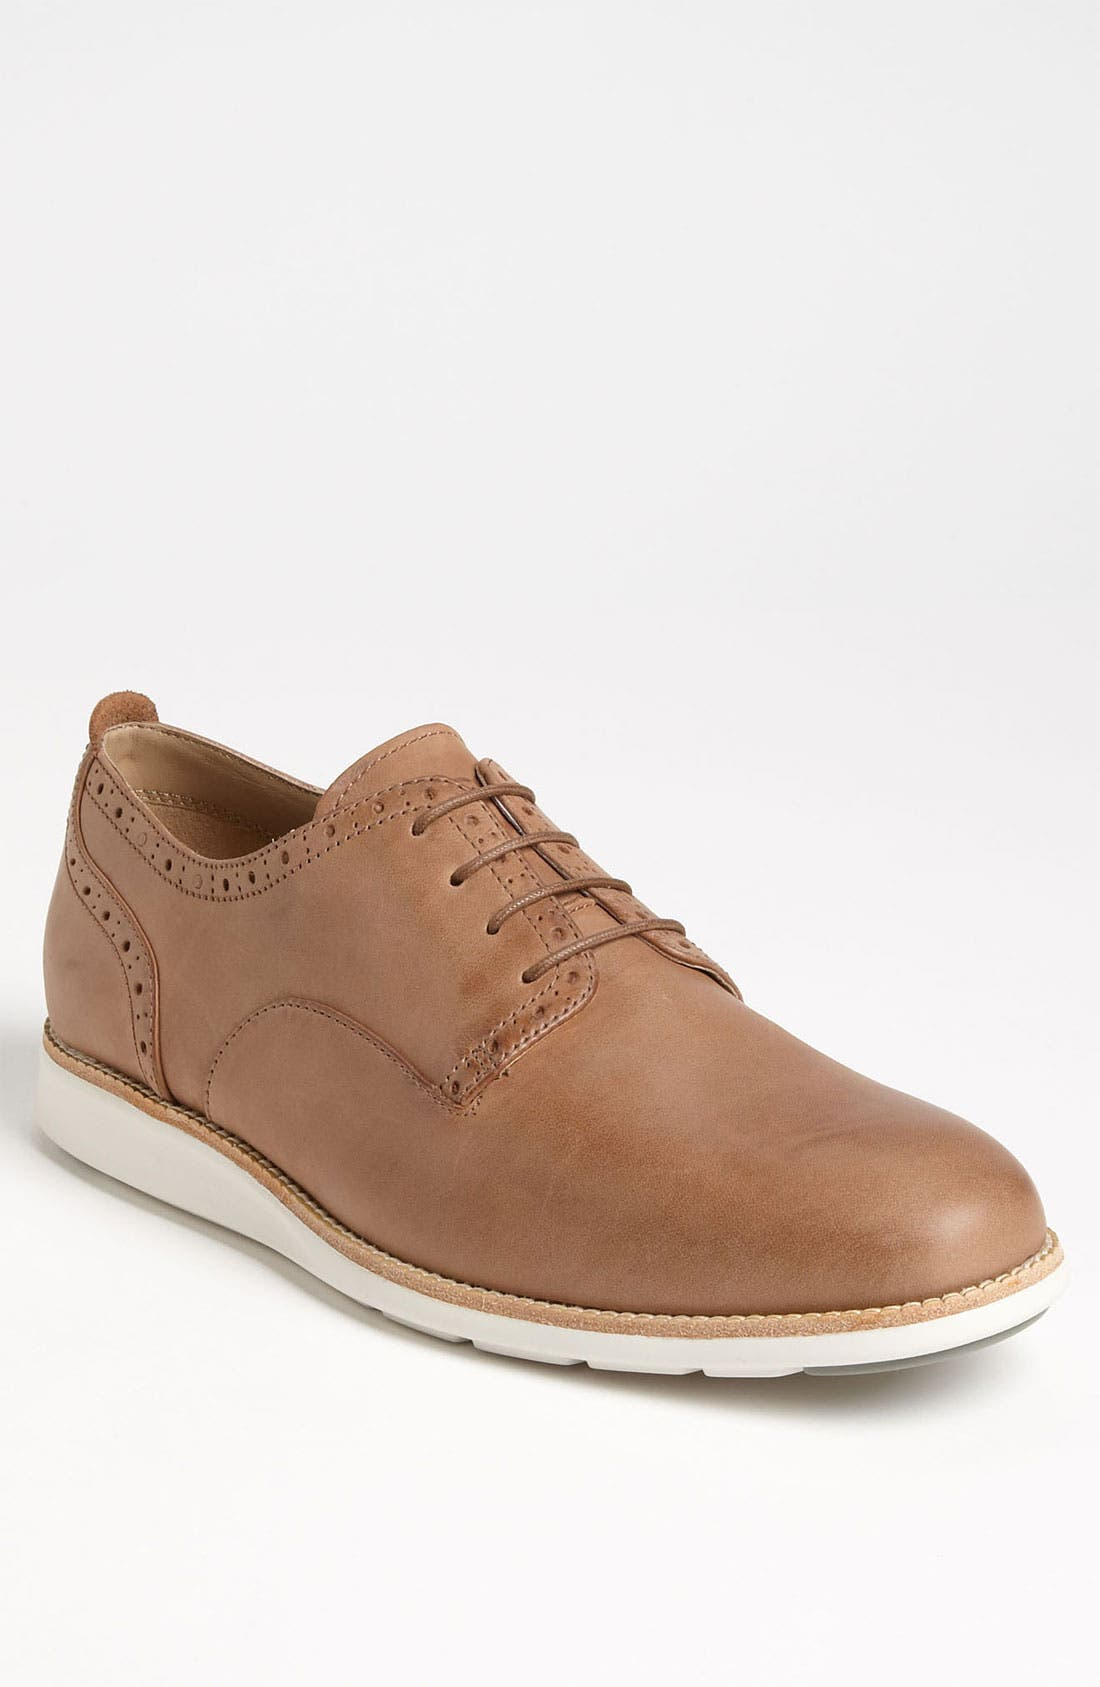 Alternate Image 1 Selected - ECCO 'Clayton' Plain Toe Derby